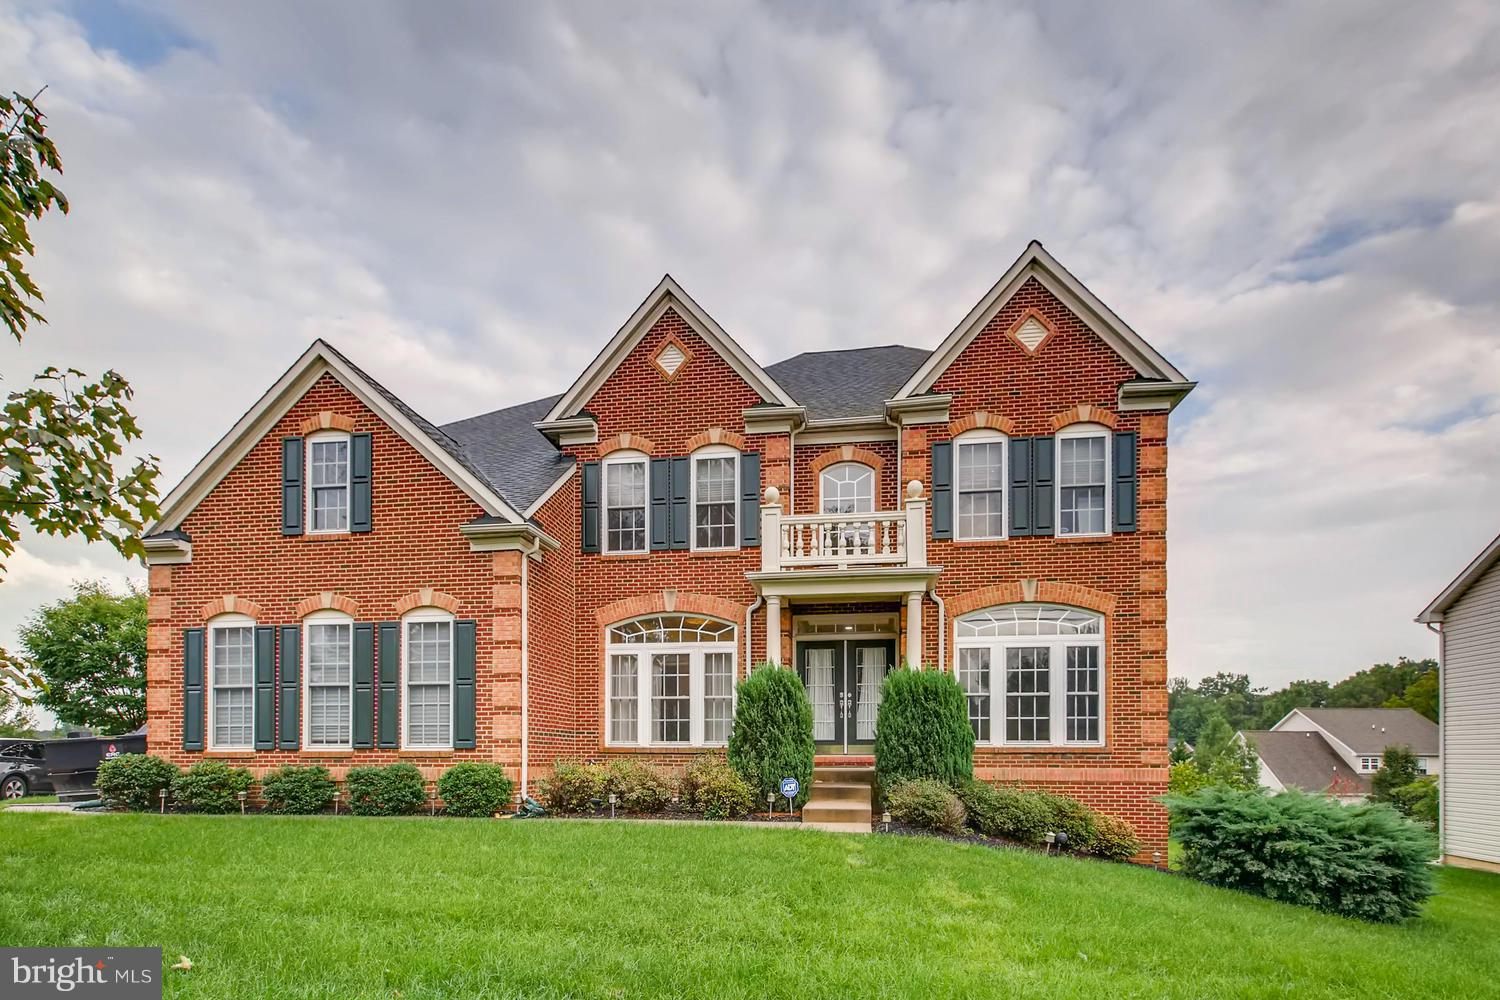 9414 RYANS WAY, PERRY HALL, MD 21128